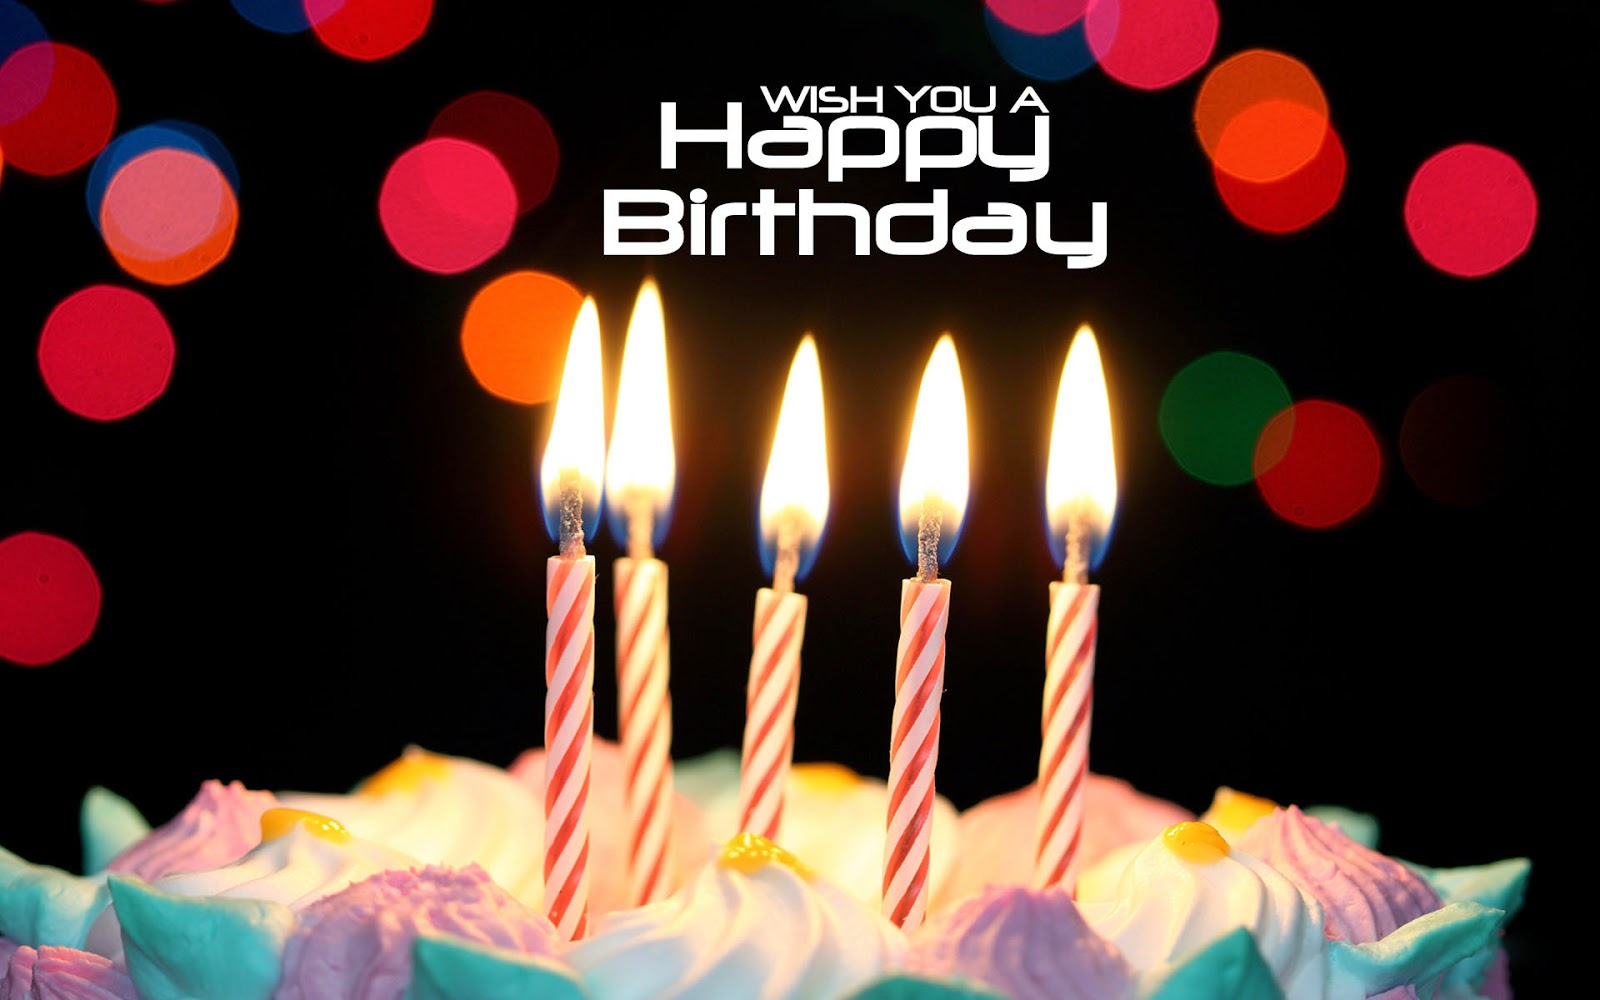 michael baculinao's blog archives: happy birthday to me 2014